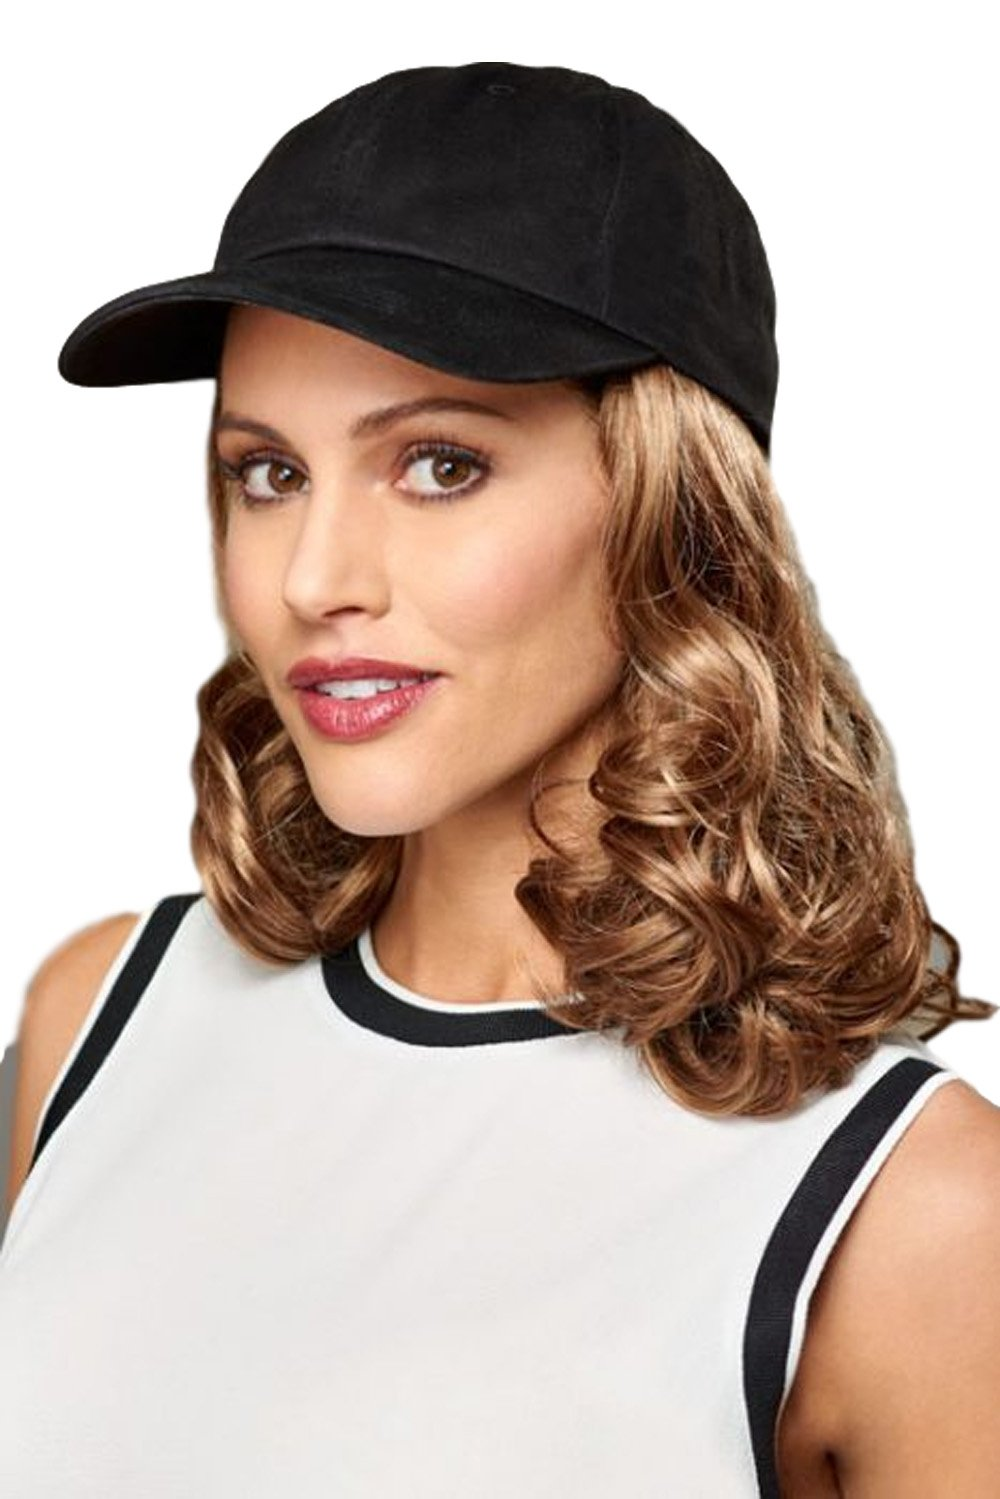 95eb2e6c58a Amazon.com   Henry Margu Hair Accents Curly Black Baseball Cap Wig (1BH -  OFF BLACK   MEDIUM DARK BROWN HIGHLIGHTS)   Beauty